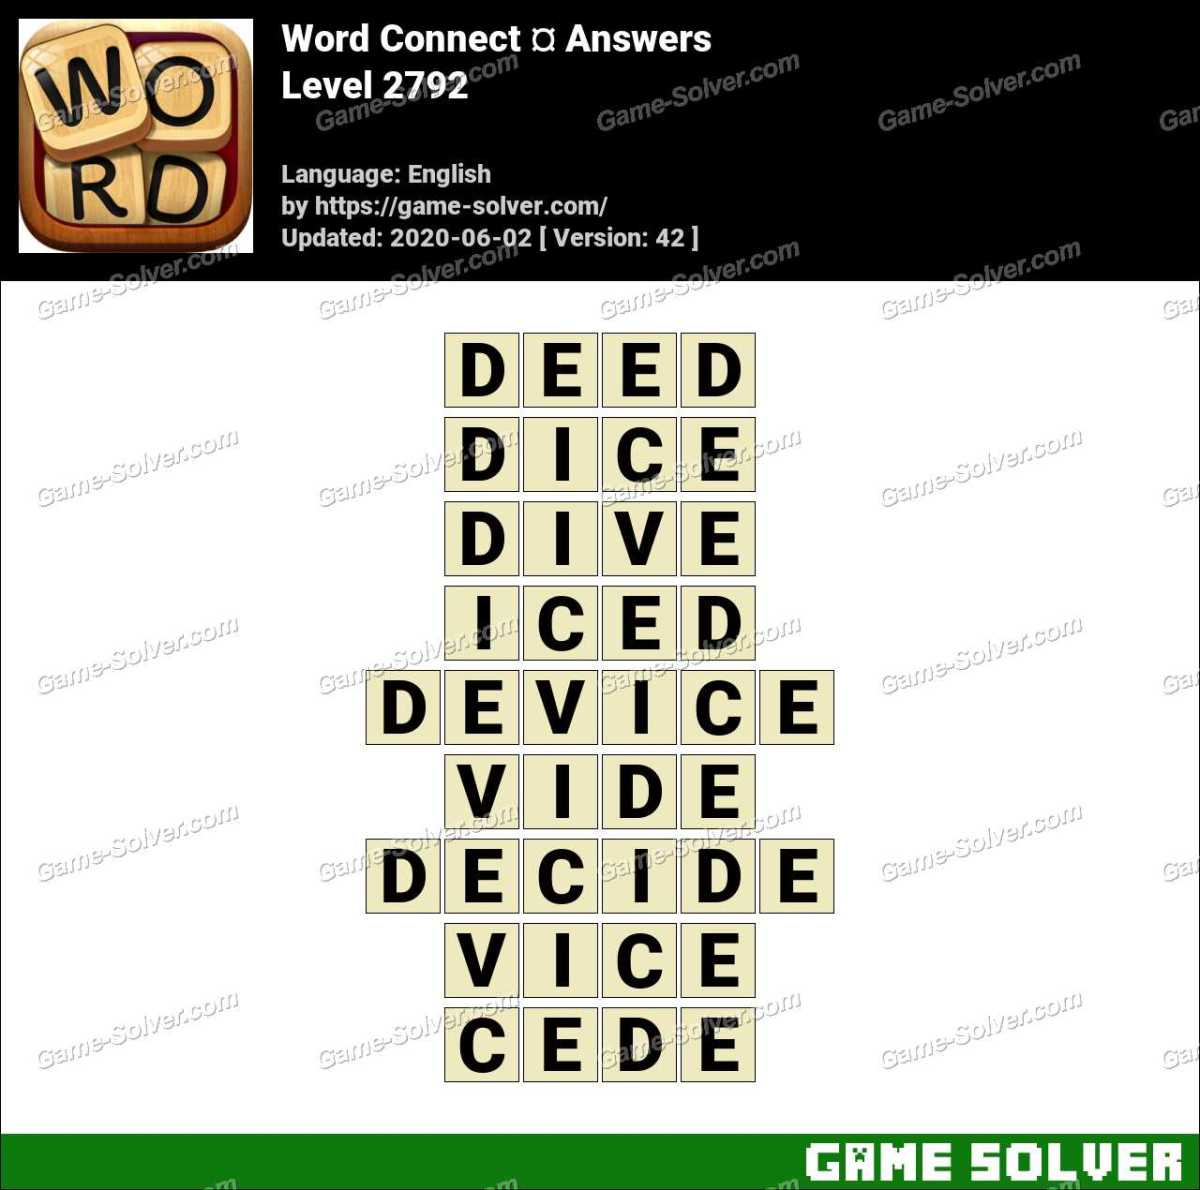 Word Connect Level 2792 Answers